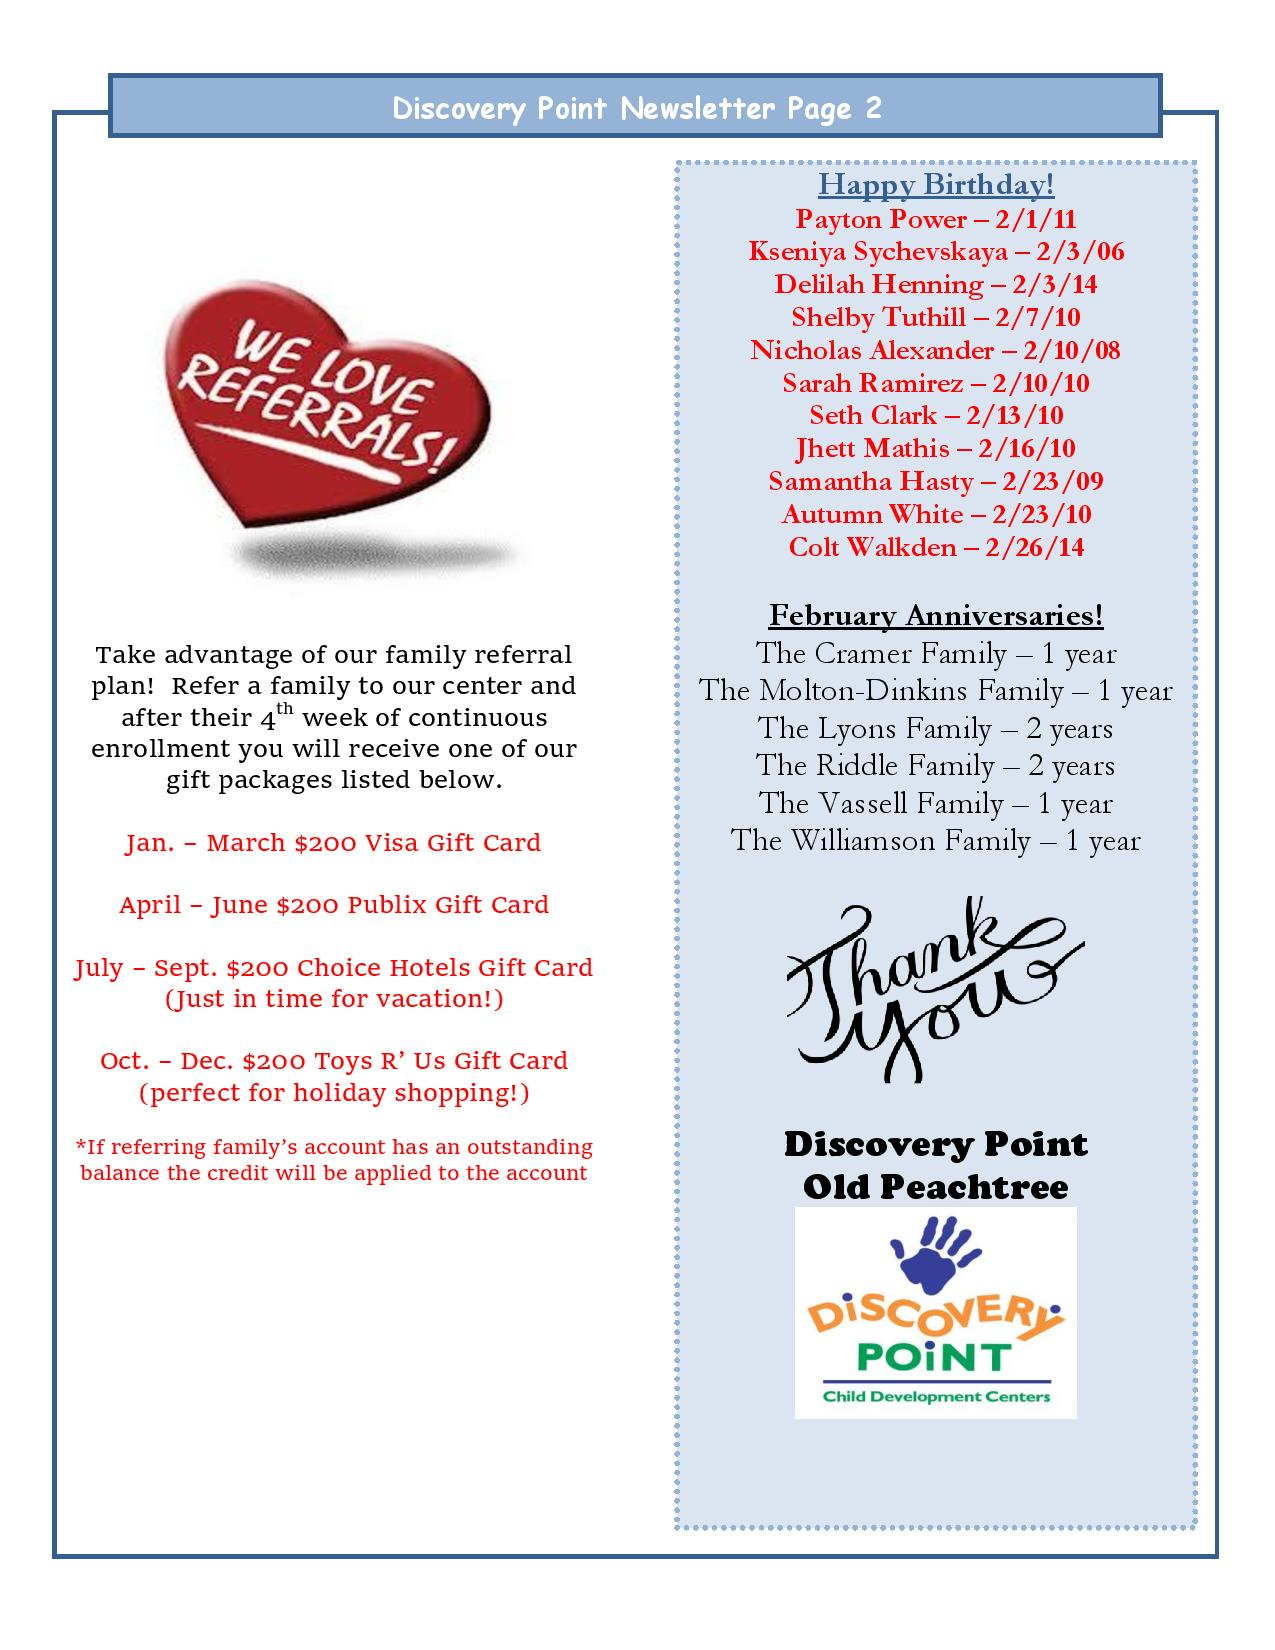 Discovery Point Old Peachtree February 2015 Newsletter Page 2